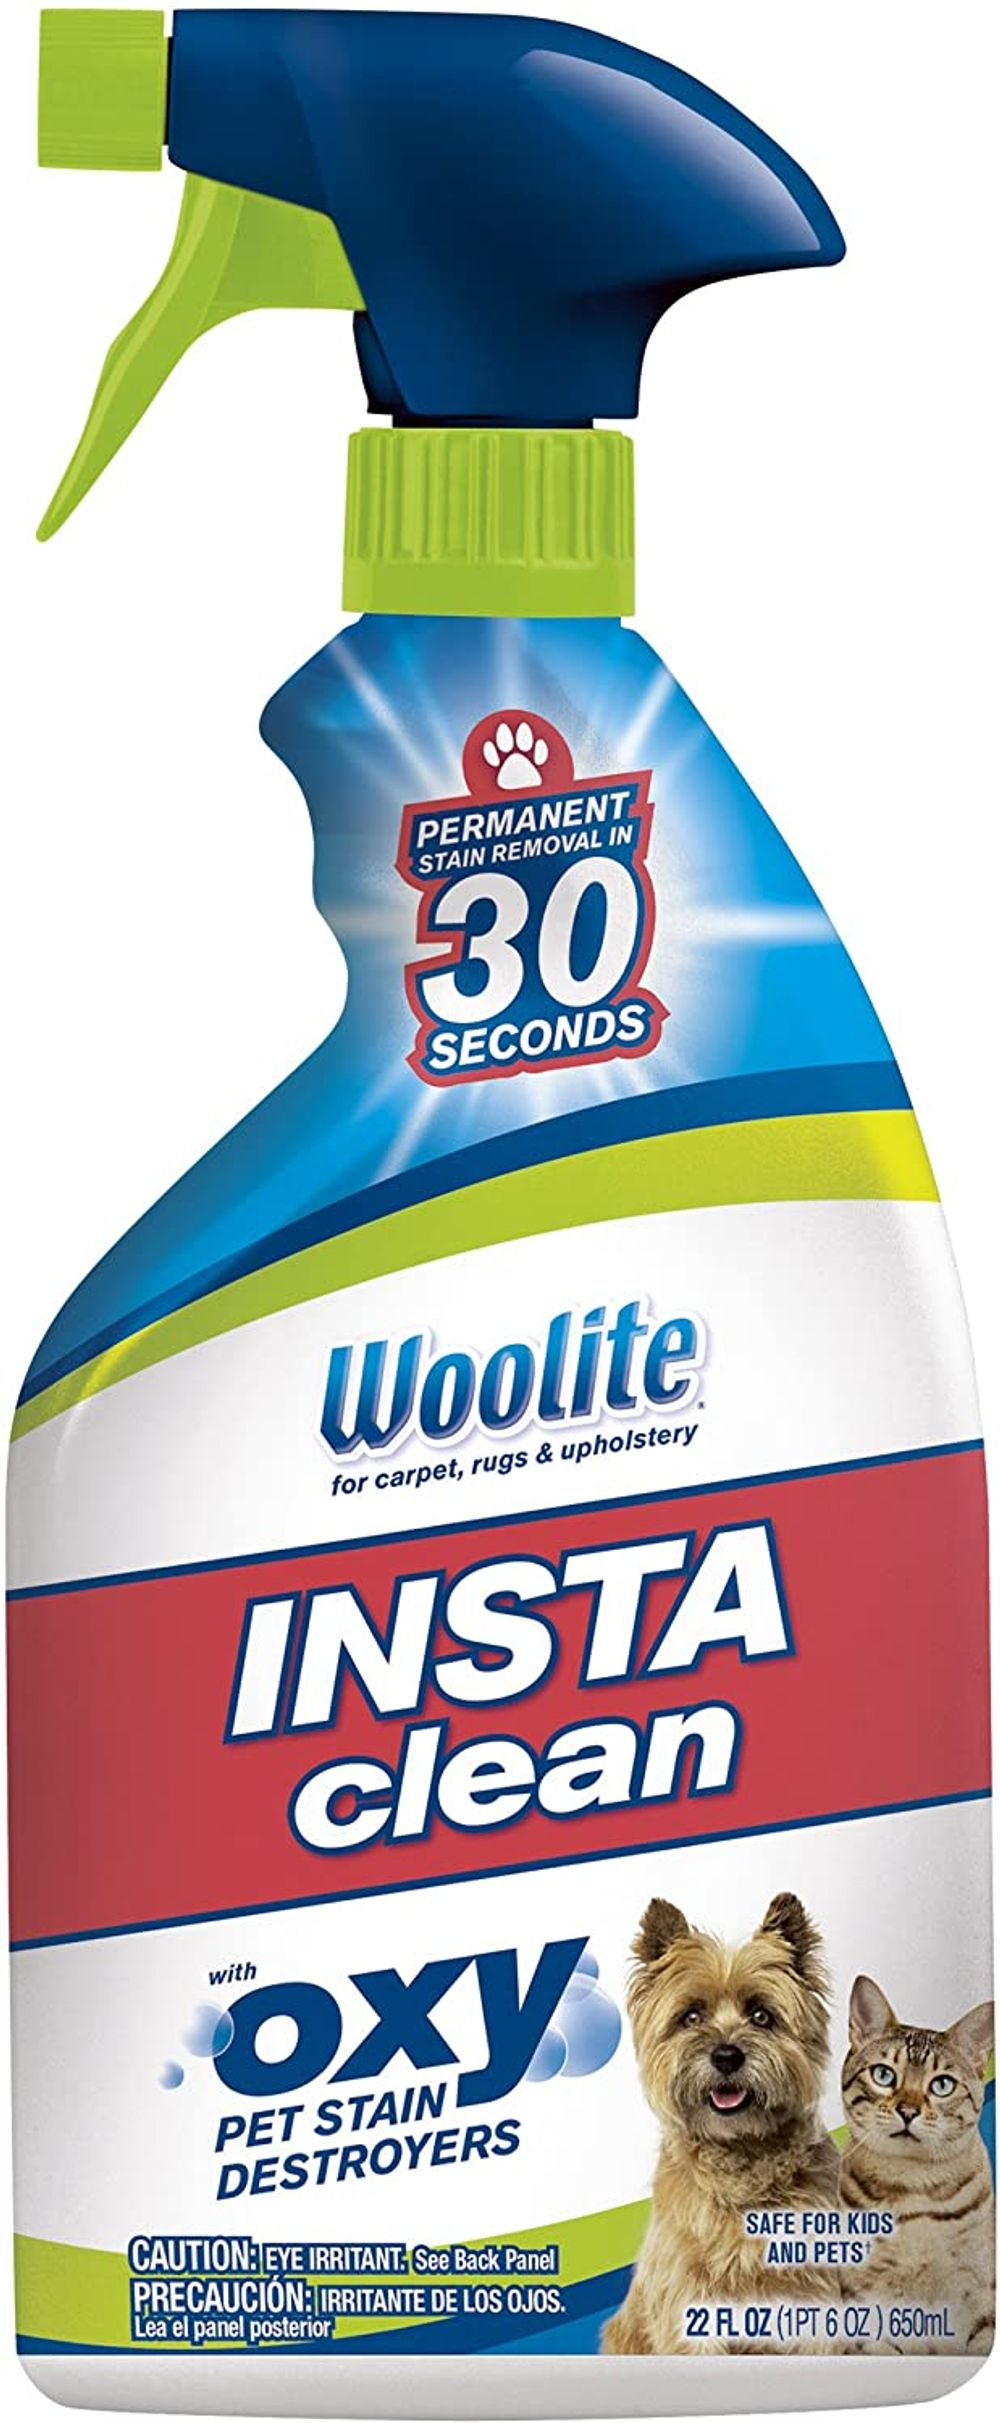 Woolite INSTAclean Pet Stain Remover, 1684